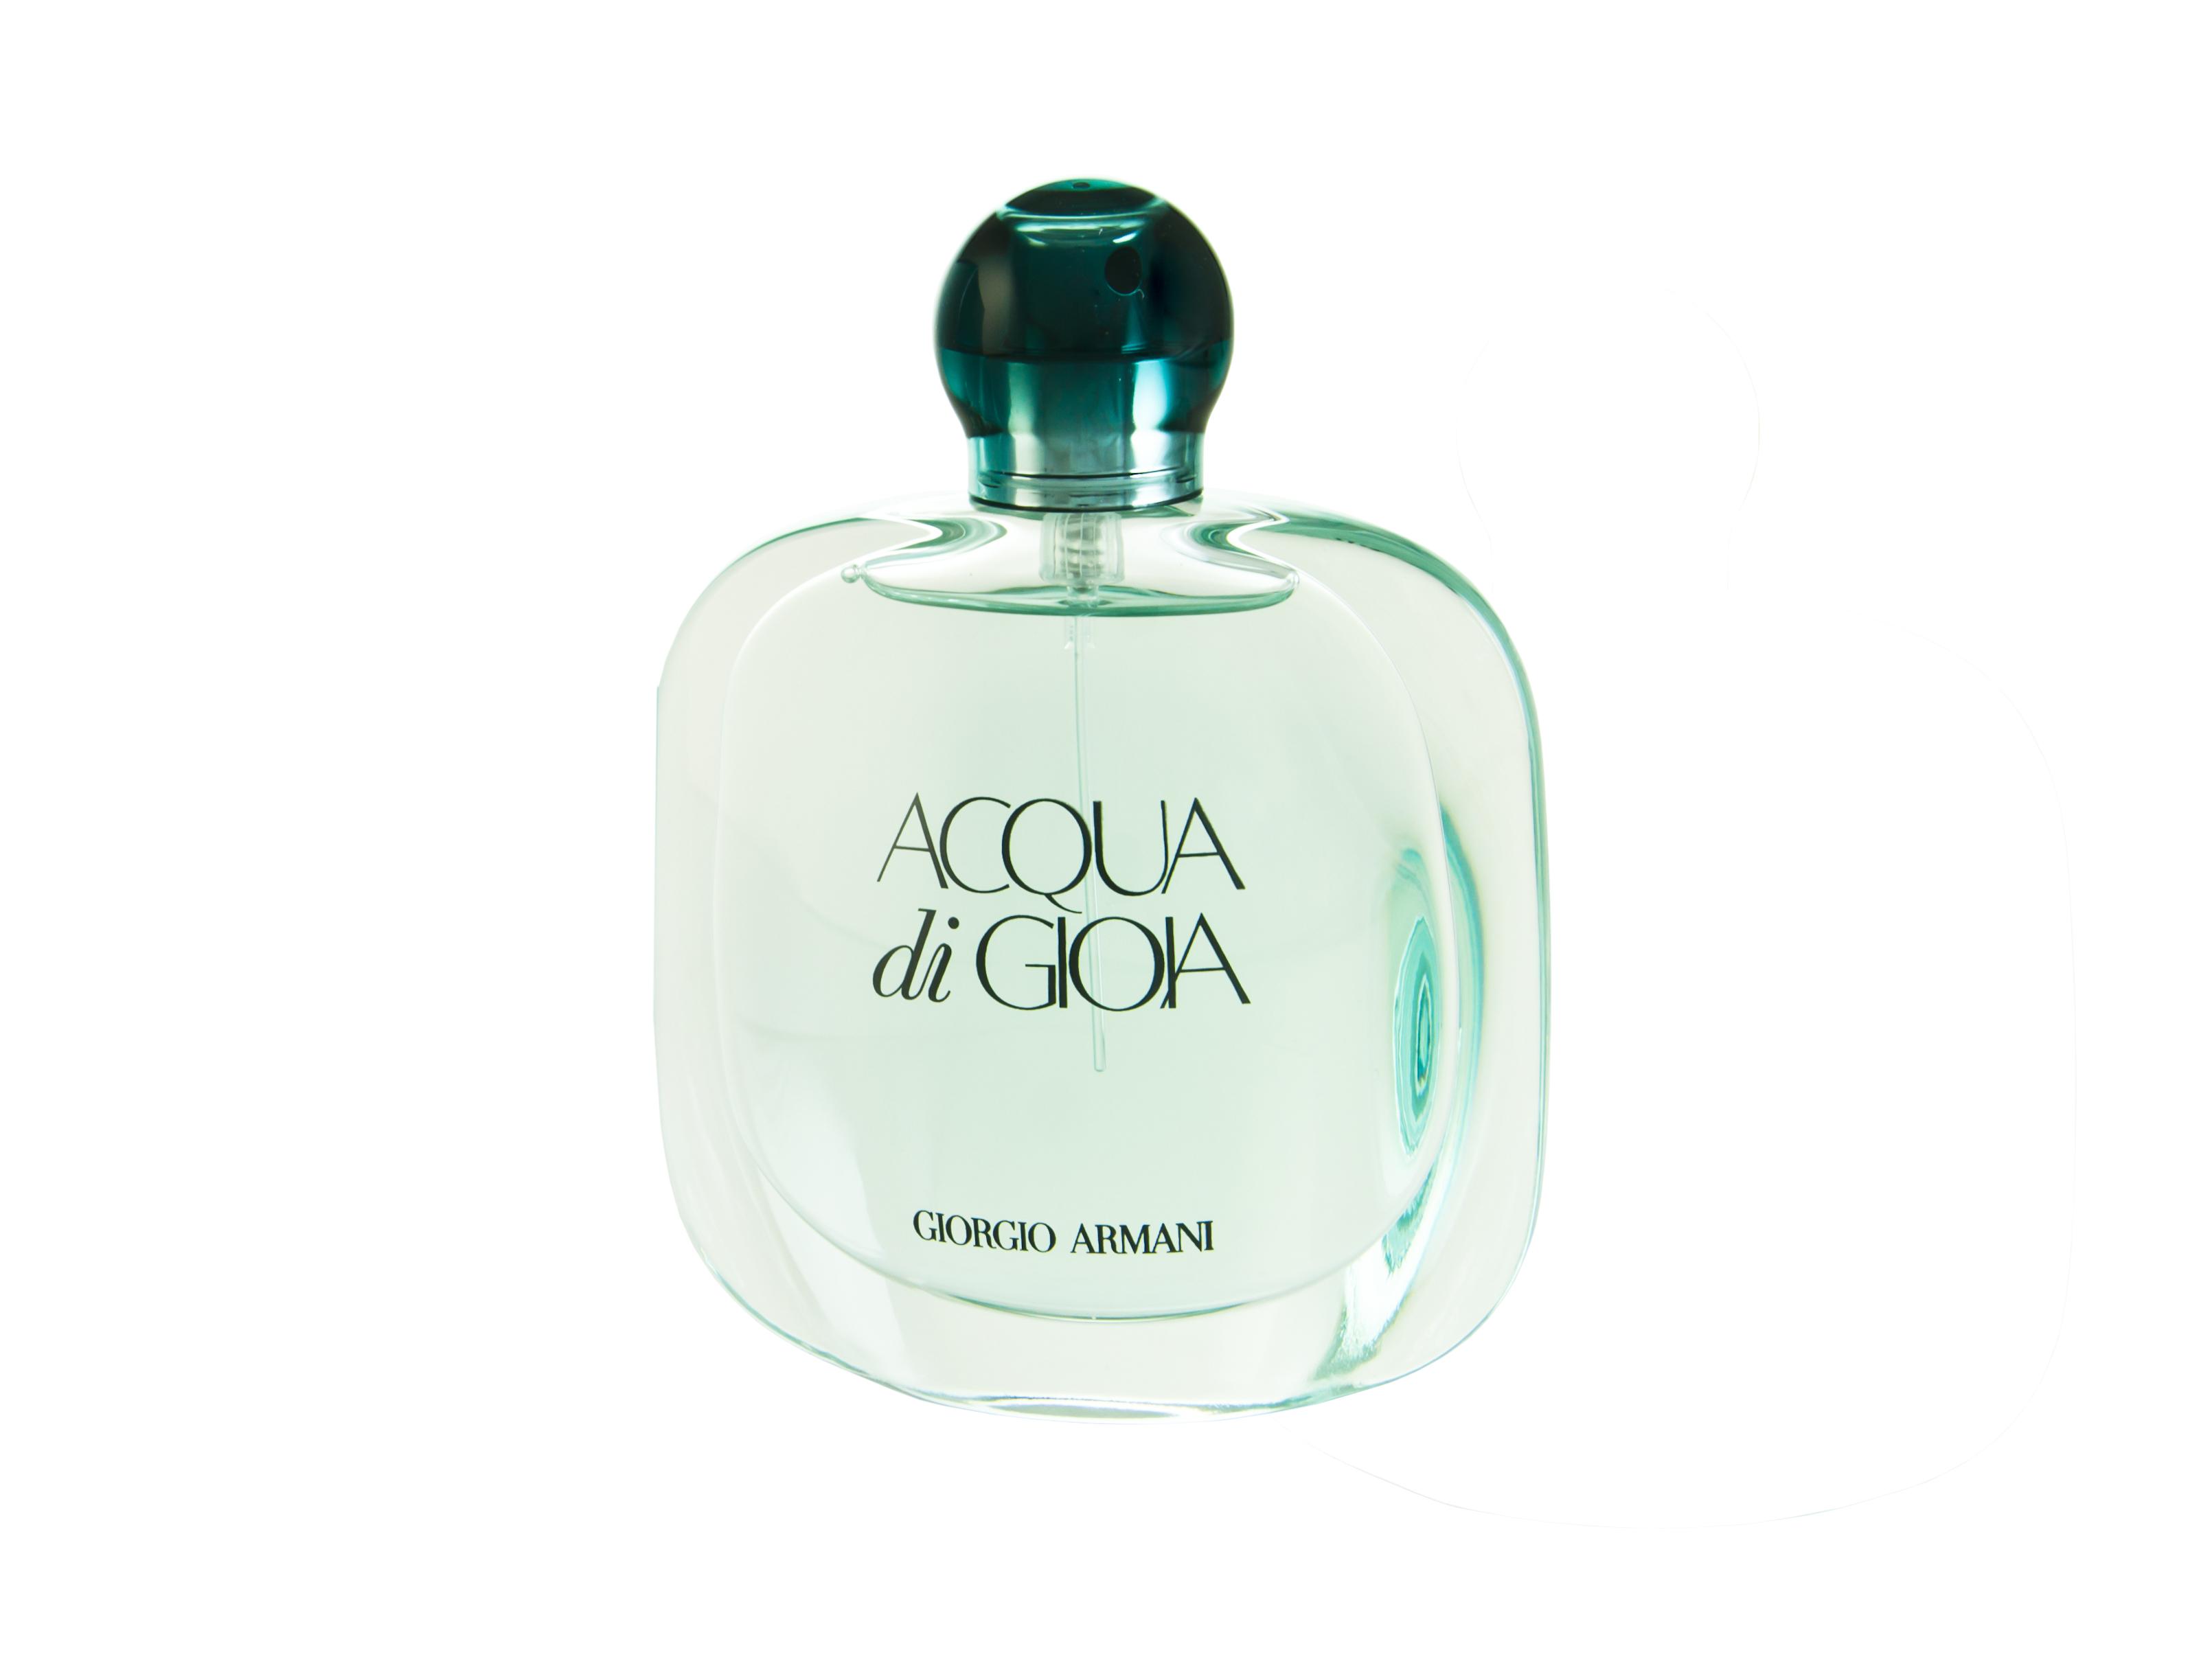 Giorgio Armani Acqua di Gioia EDP 50ml - No Box Enlarged Preview